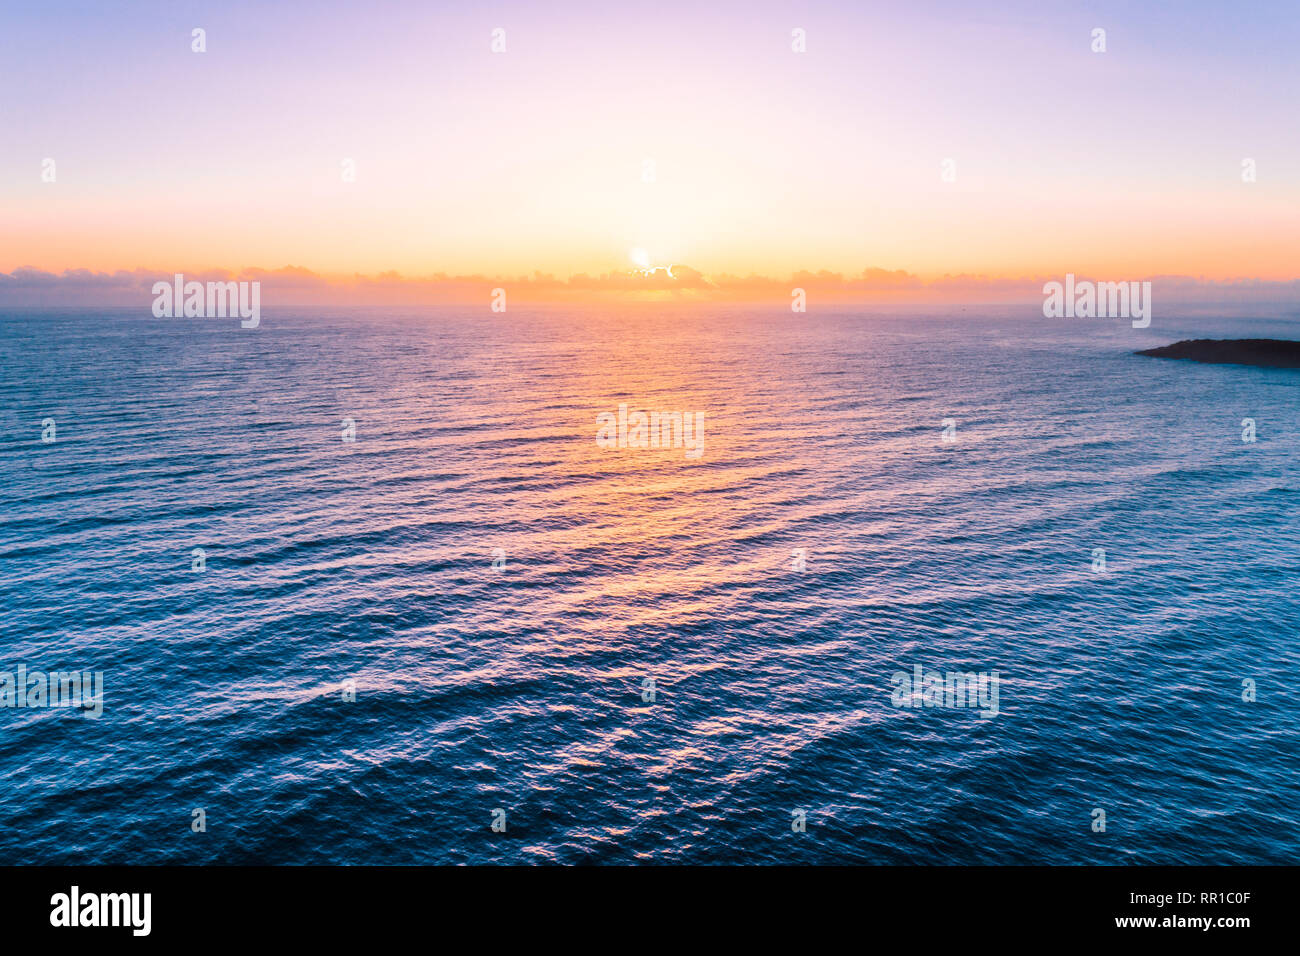 Sunrise over water - beautiful seascape with copy space - Stock Image